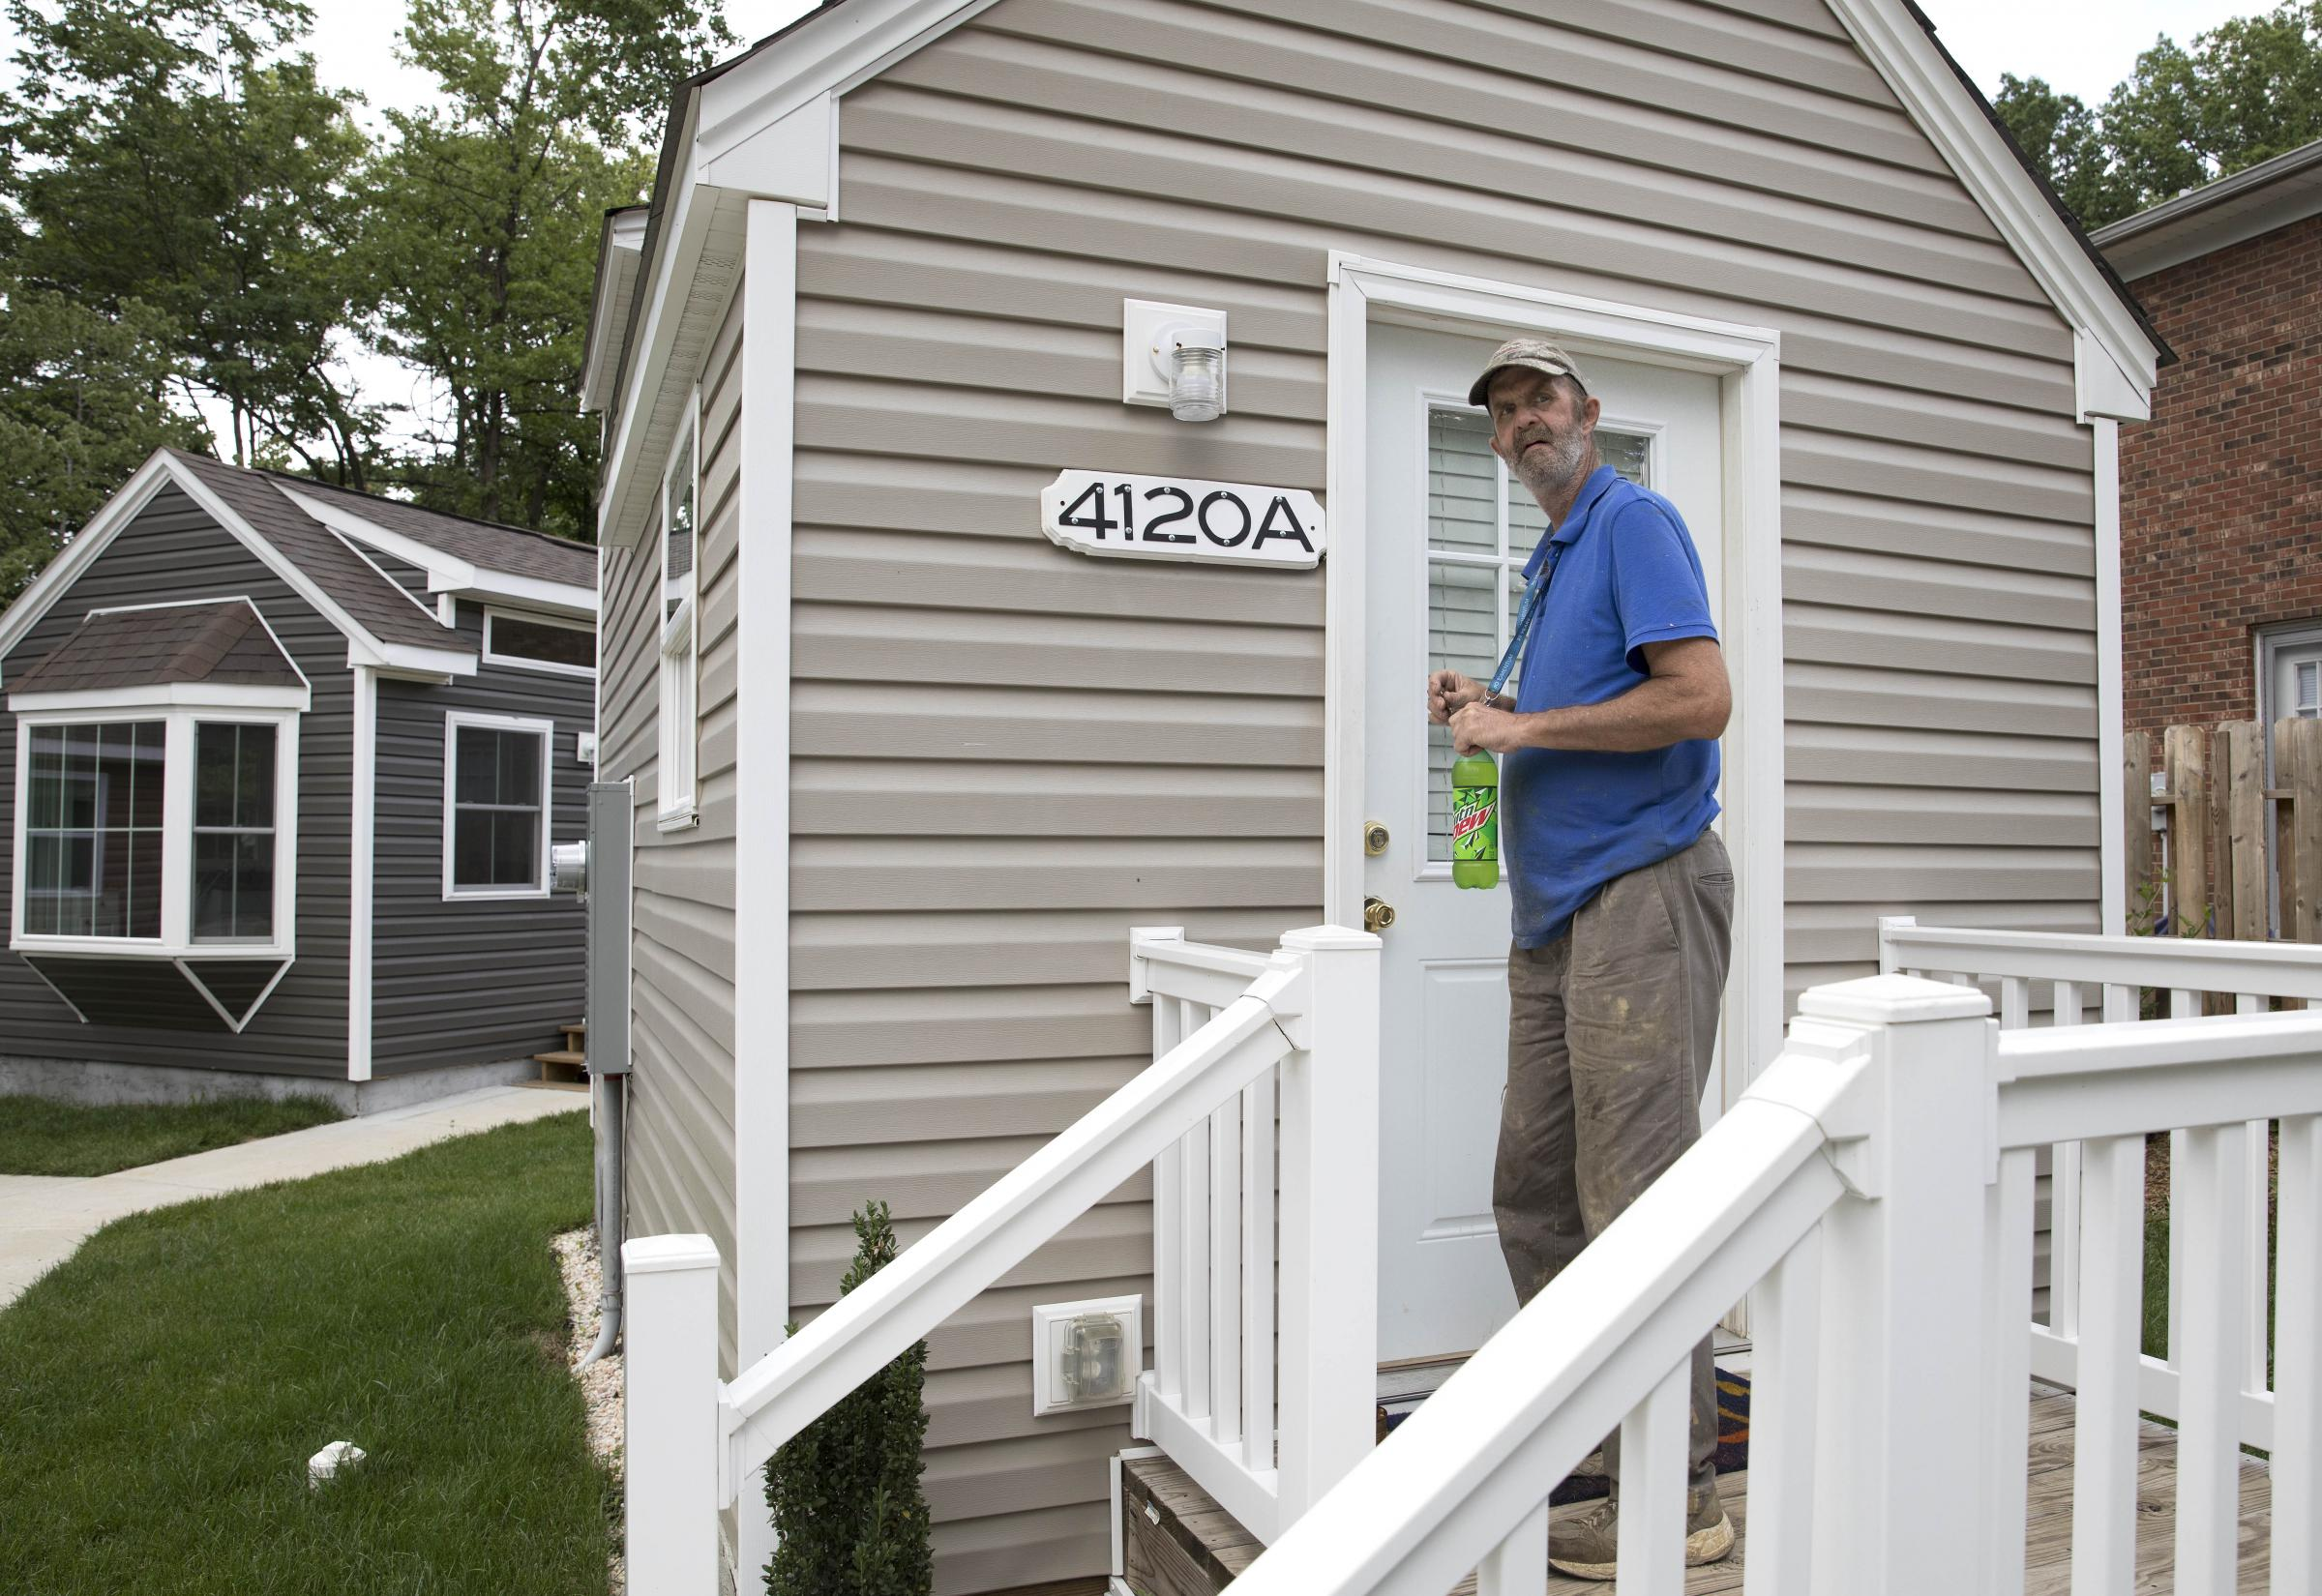 Greensboro Builds Tiny Houses For Homeless Wunc